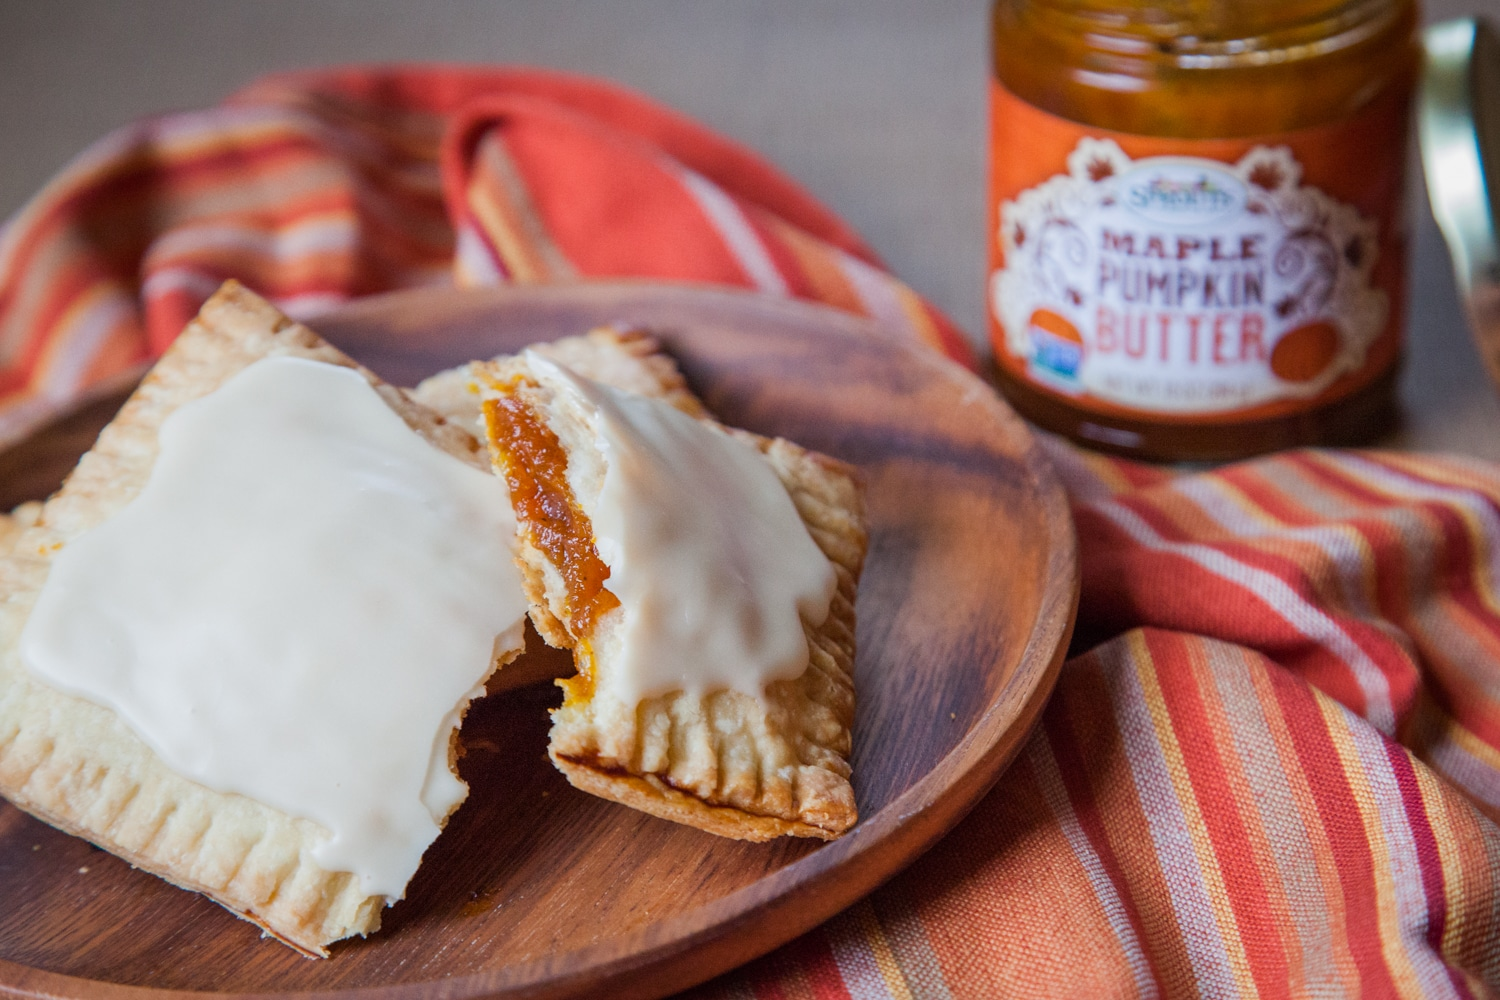 Homemade Pumpkin Butter Pop-Tarts are fun to make and eat!